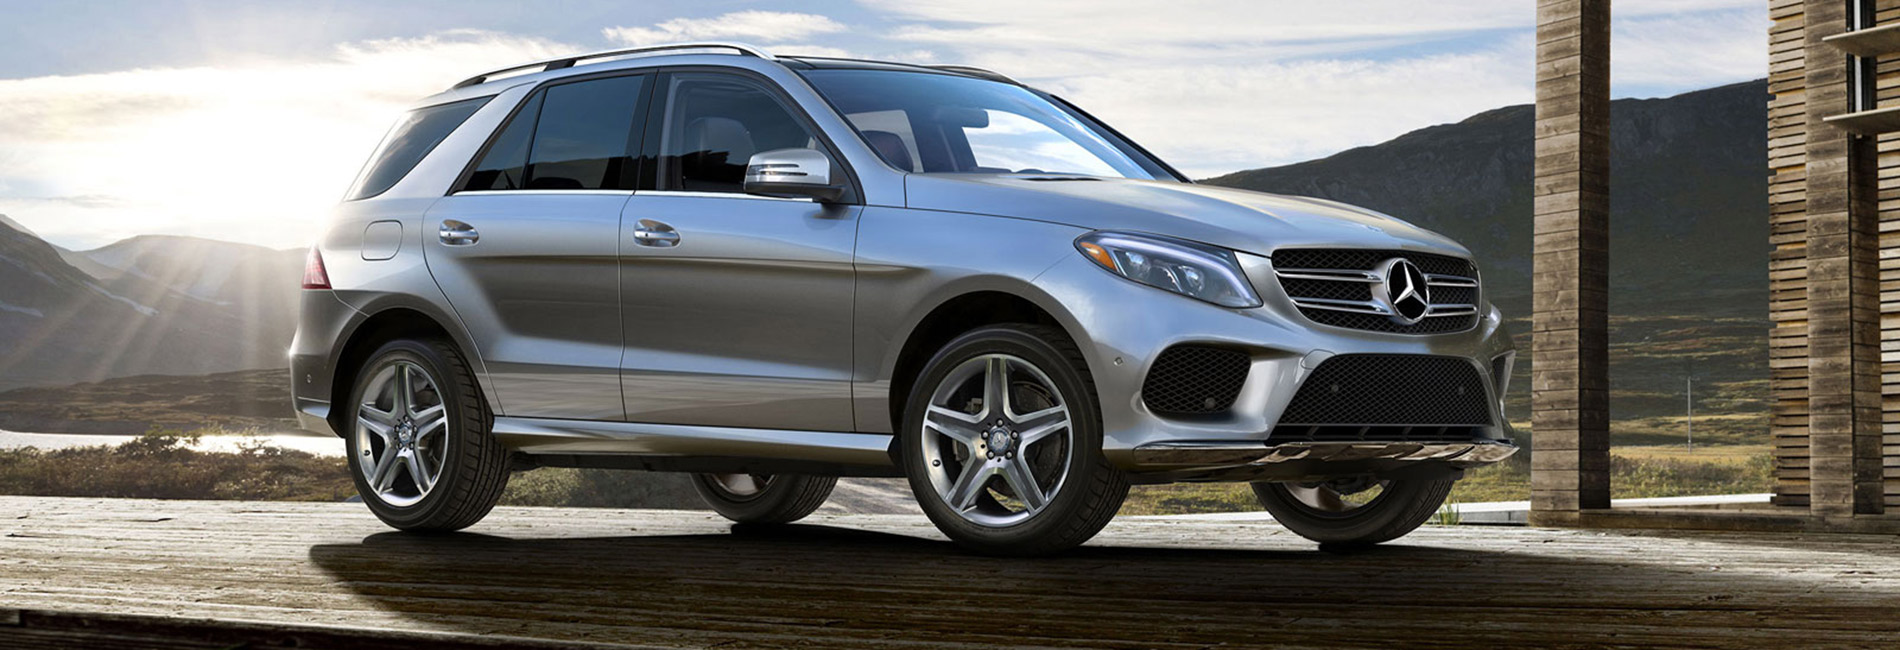 2016 mercedes benz gle suv mercedes benz of jackson for Mercedes benz college graduate program